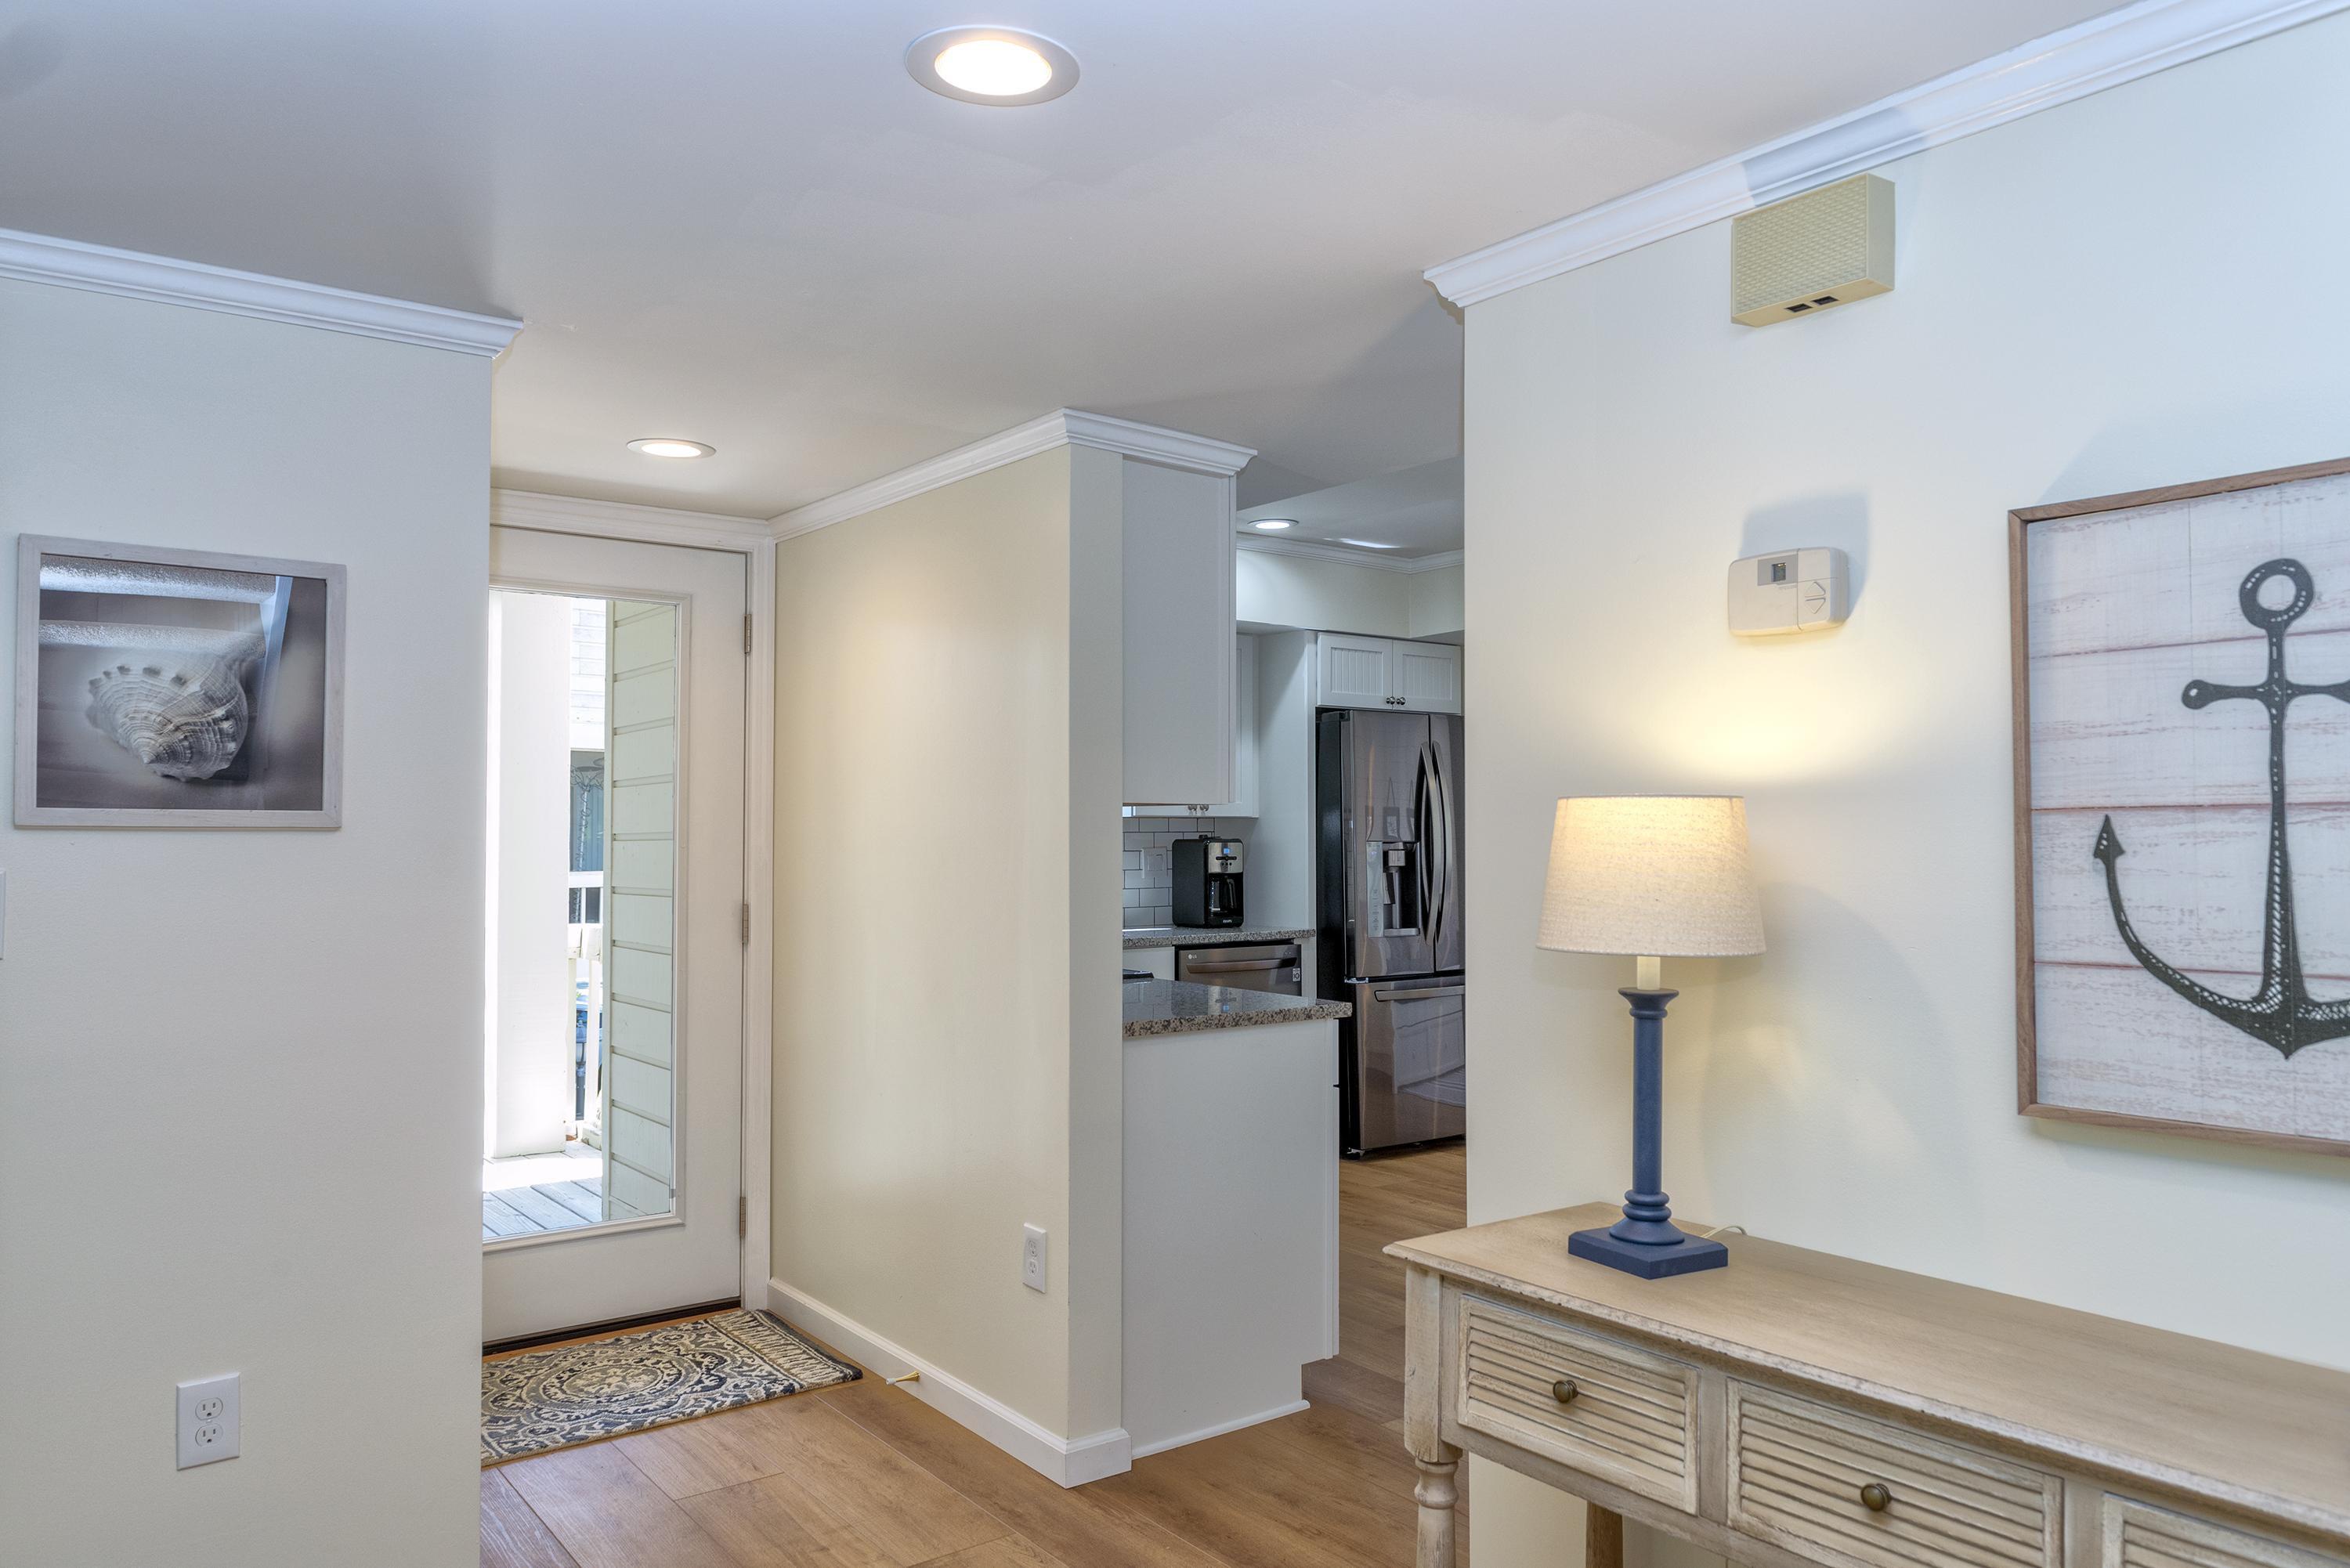 You enter through the front door into a light filled, beautifully decorated beach home.